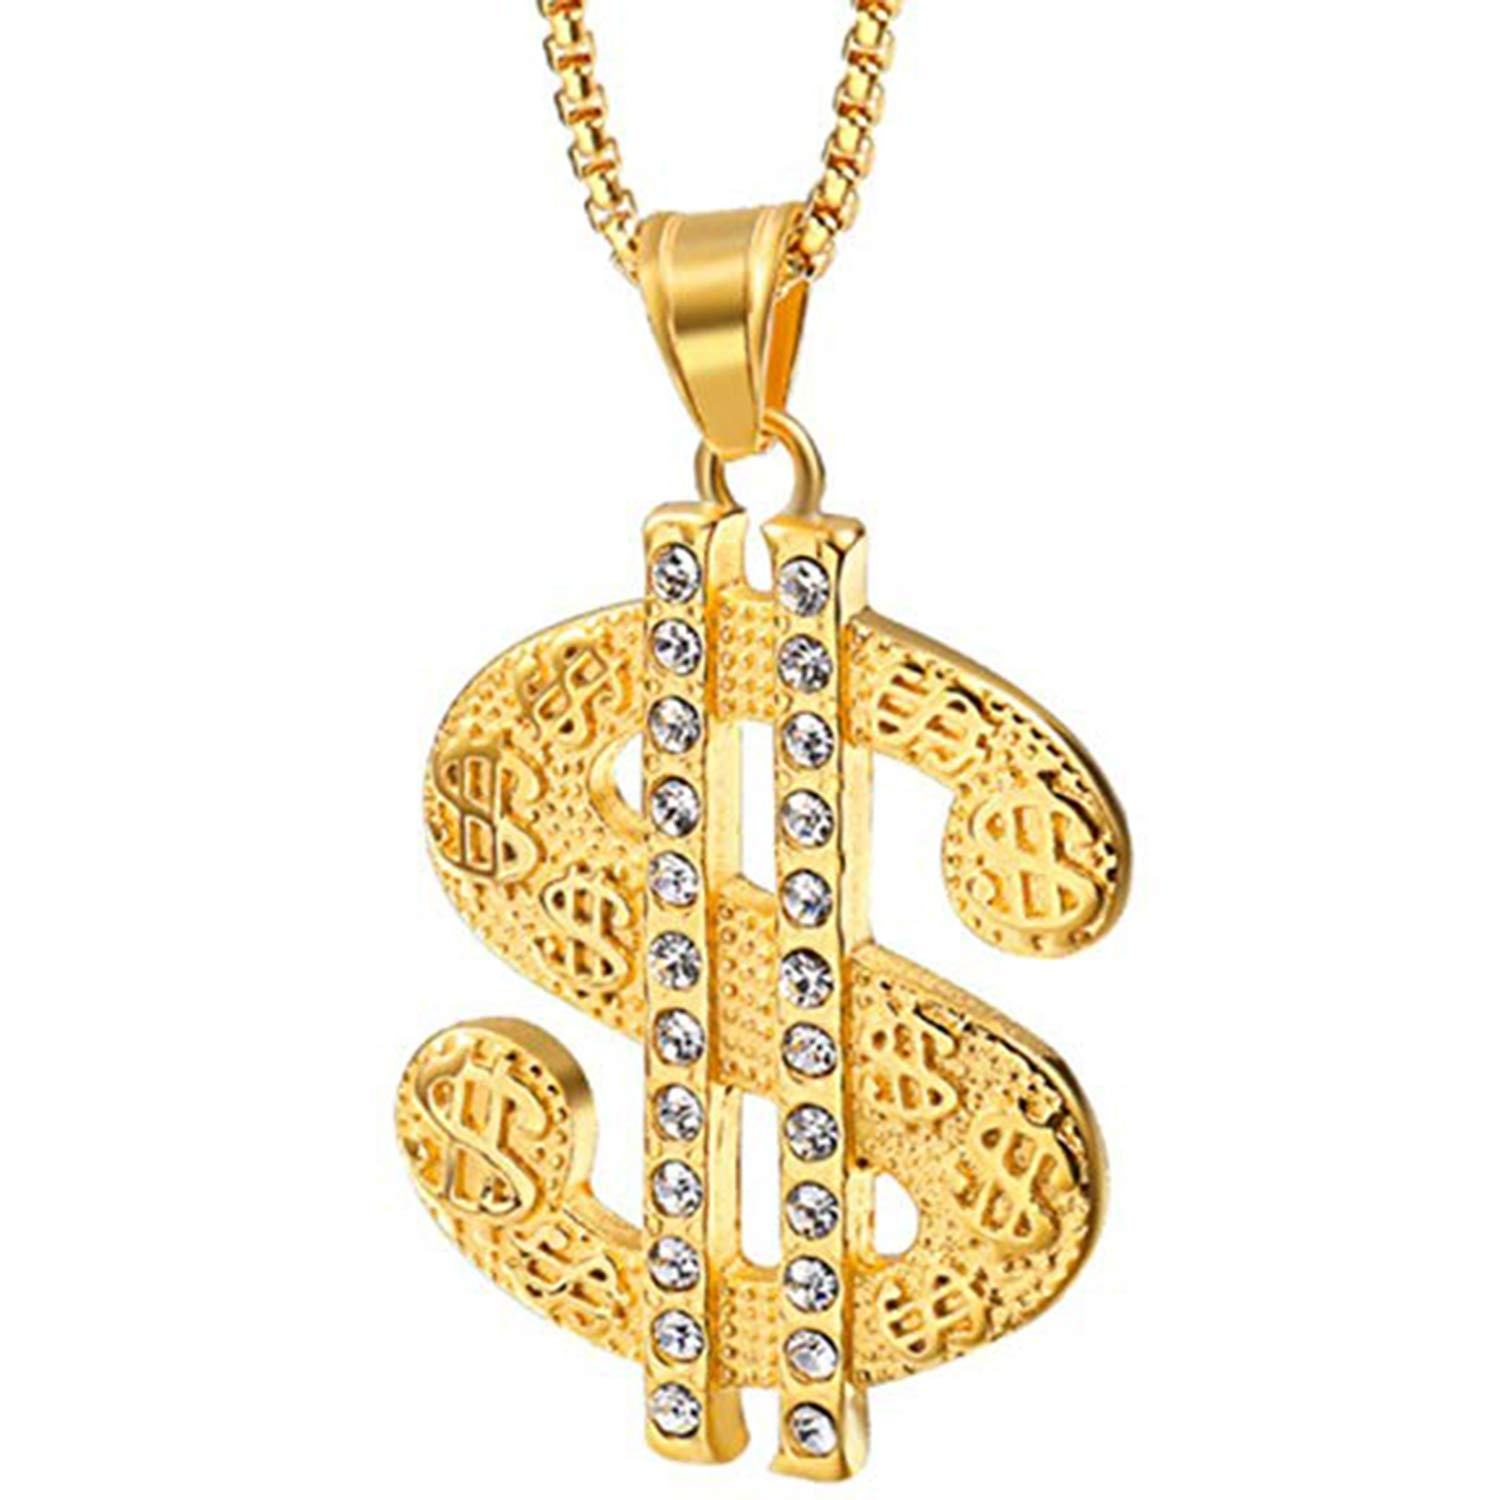 New Dollar Charm Fashion Pendant with 18 Chain for Unisex 14K Yellow Gold Fn Simulated Diamond Studded